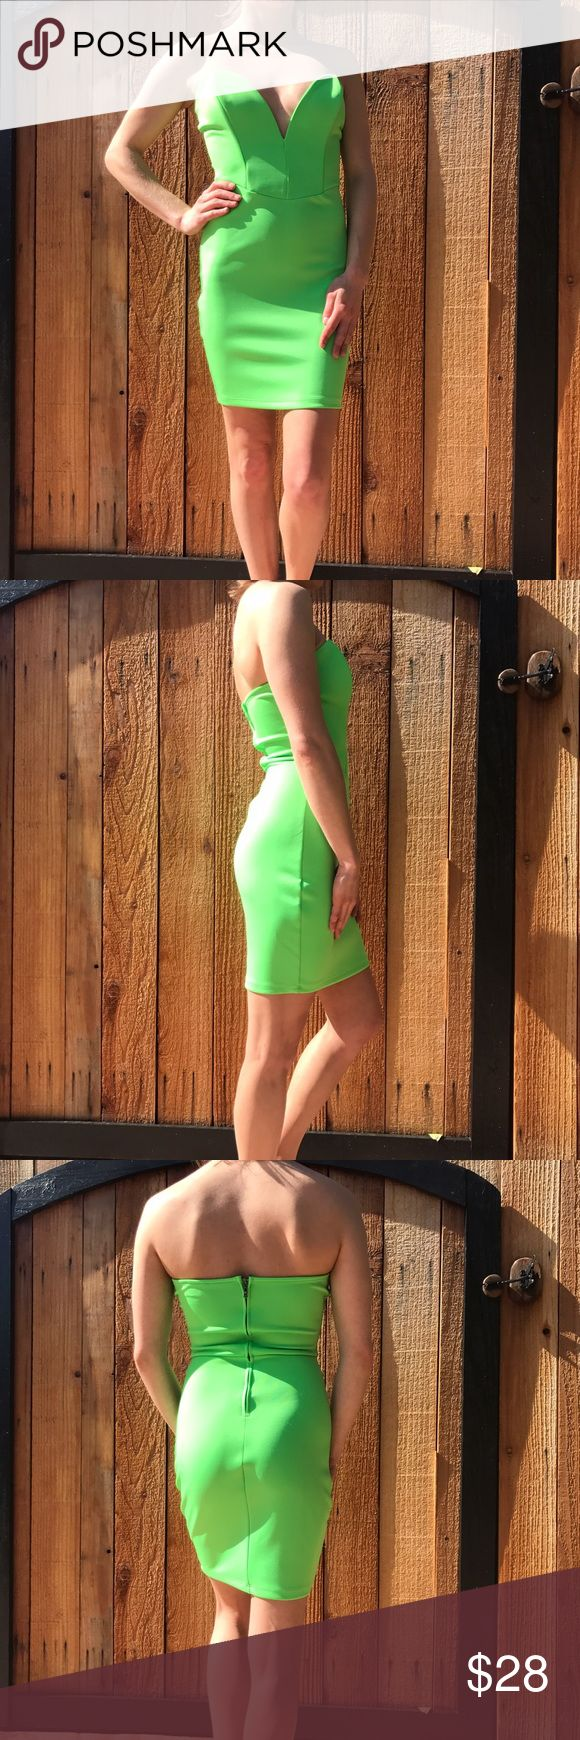 Lime Green Miami Dress Strapless with zipper up the back. Wire in chest area to keep it up. Measurements upon request Hot Miami Styles  Dresses Mini